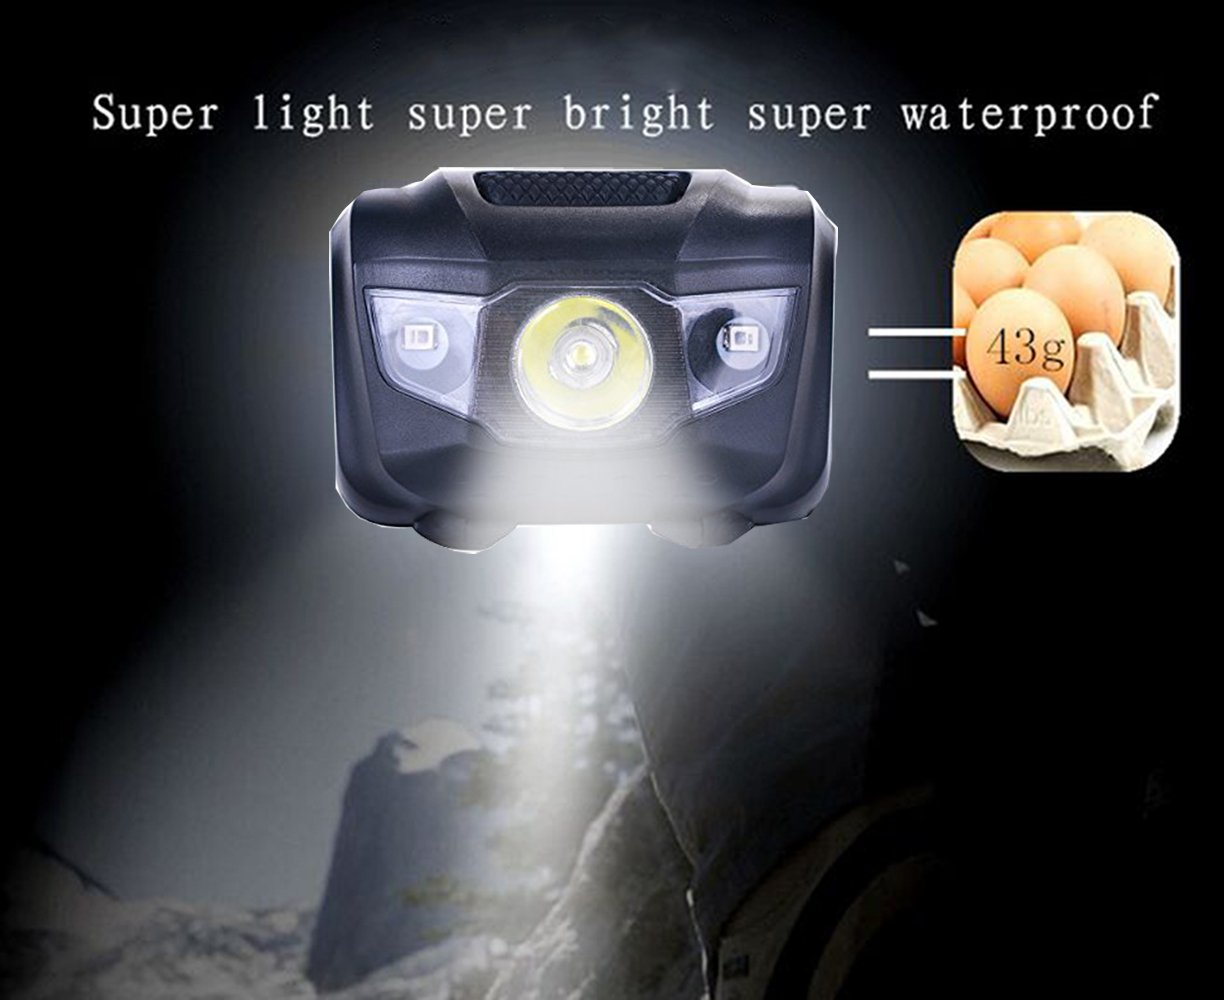 3-Pack Waterproof LED Headlamp (White and Red Lights), 4 Light Modes Lightweight Headlight for Running, Hiking, Hunting, Fishing, Camping by HappyOrange (Image #6)